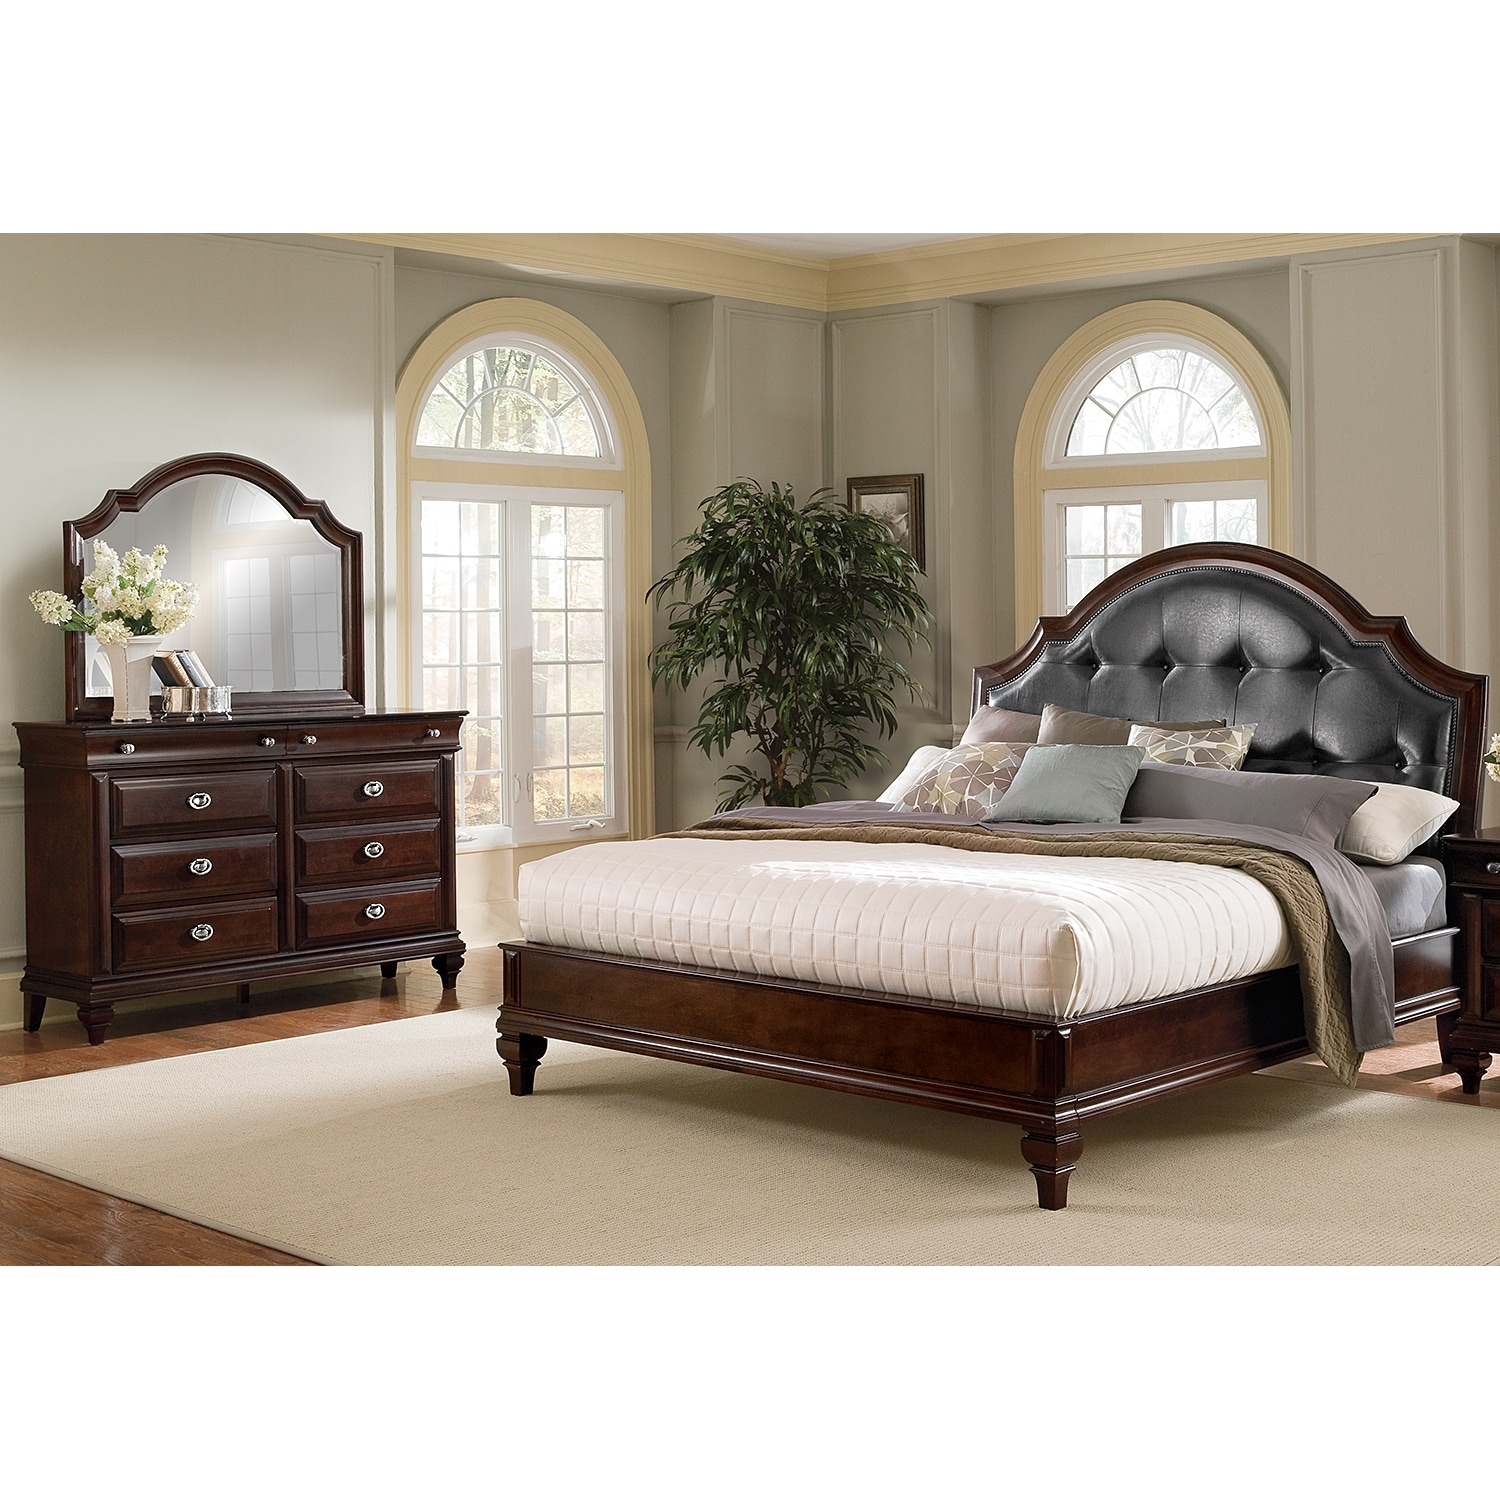 Manhattan 5-Piece King Upholstered Bedroom Set - Cherry | Value ...